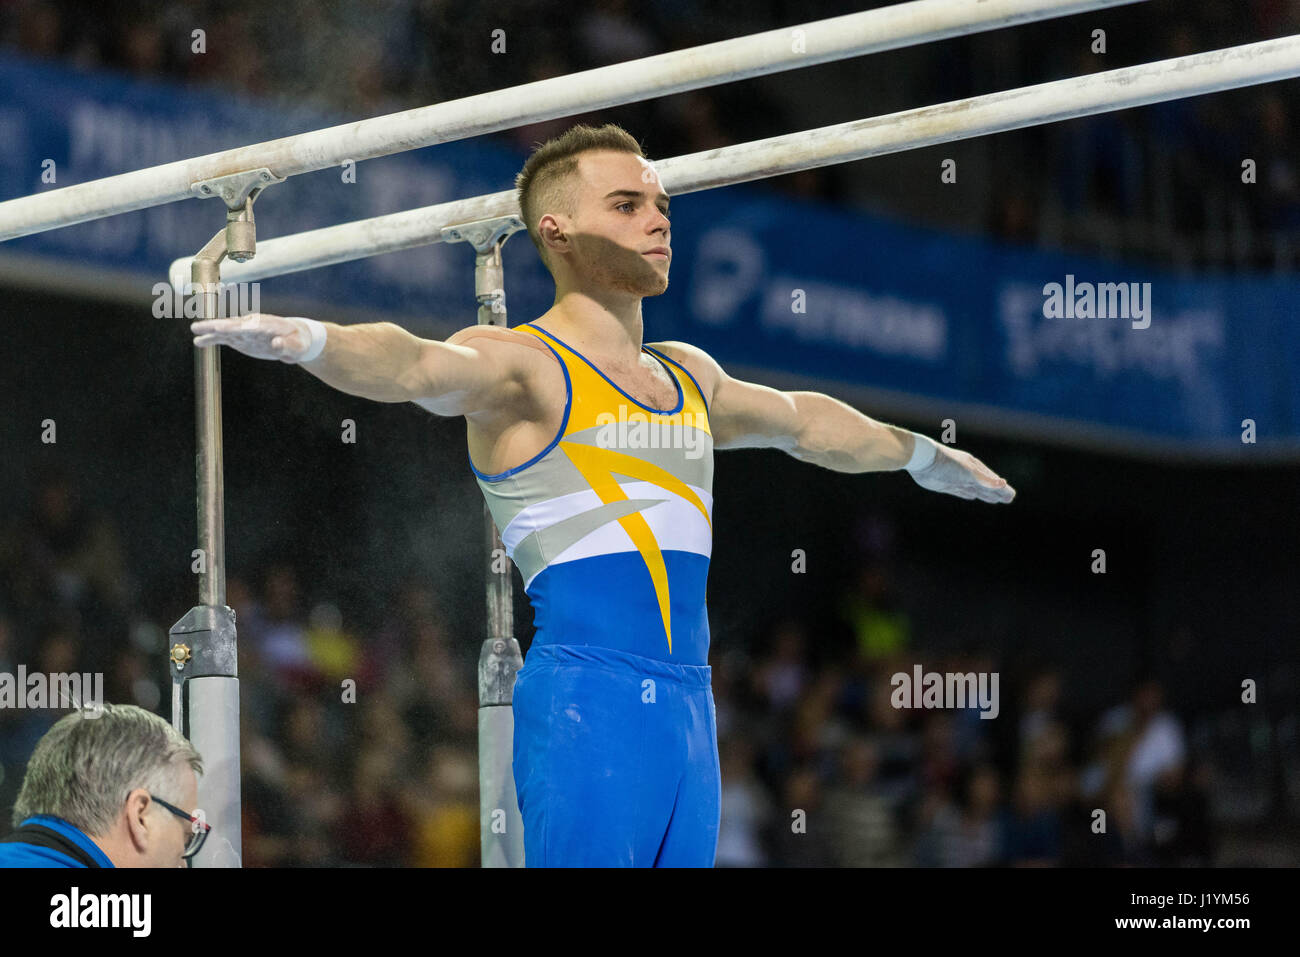 Cluj Napoca, Romania. 21st Apr, 2017. Oleg Vernjajev from Ukraine performs at the bar at the UEG European Championships - Stock Image